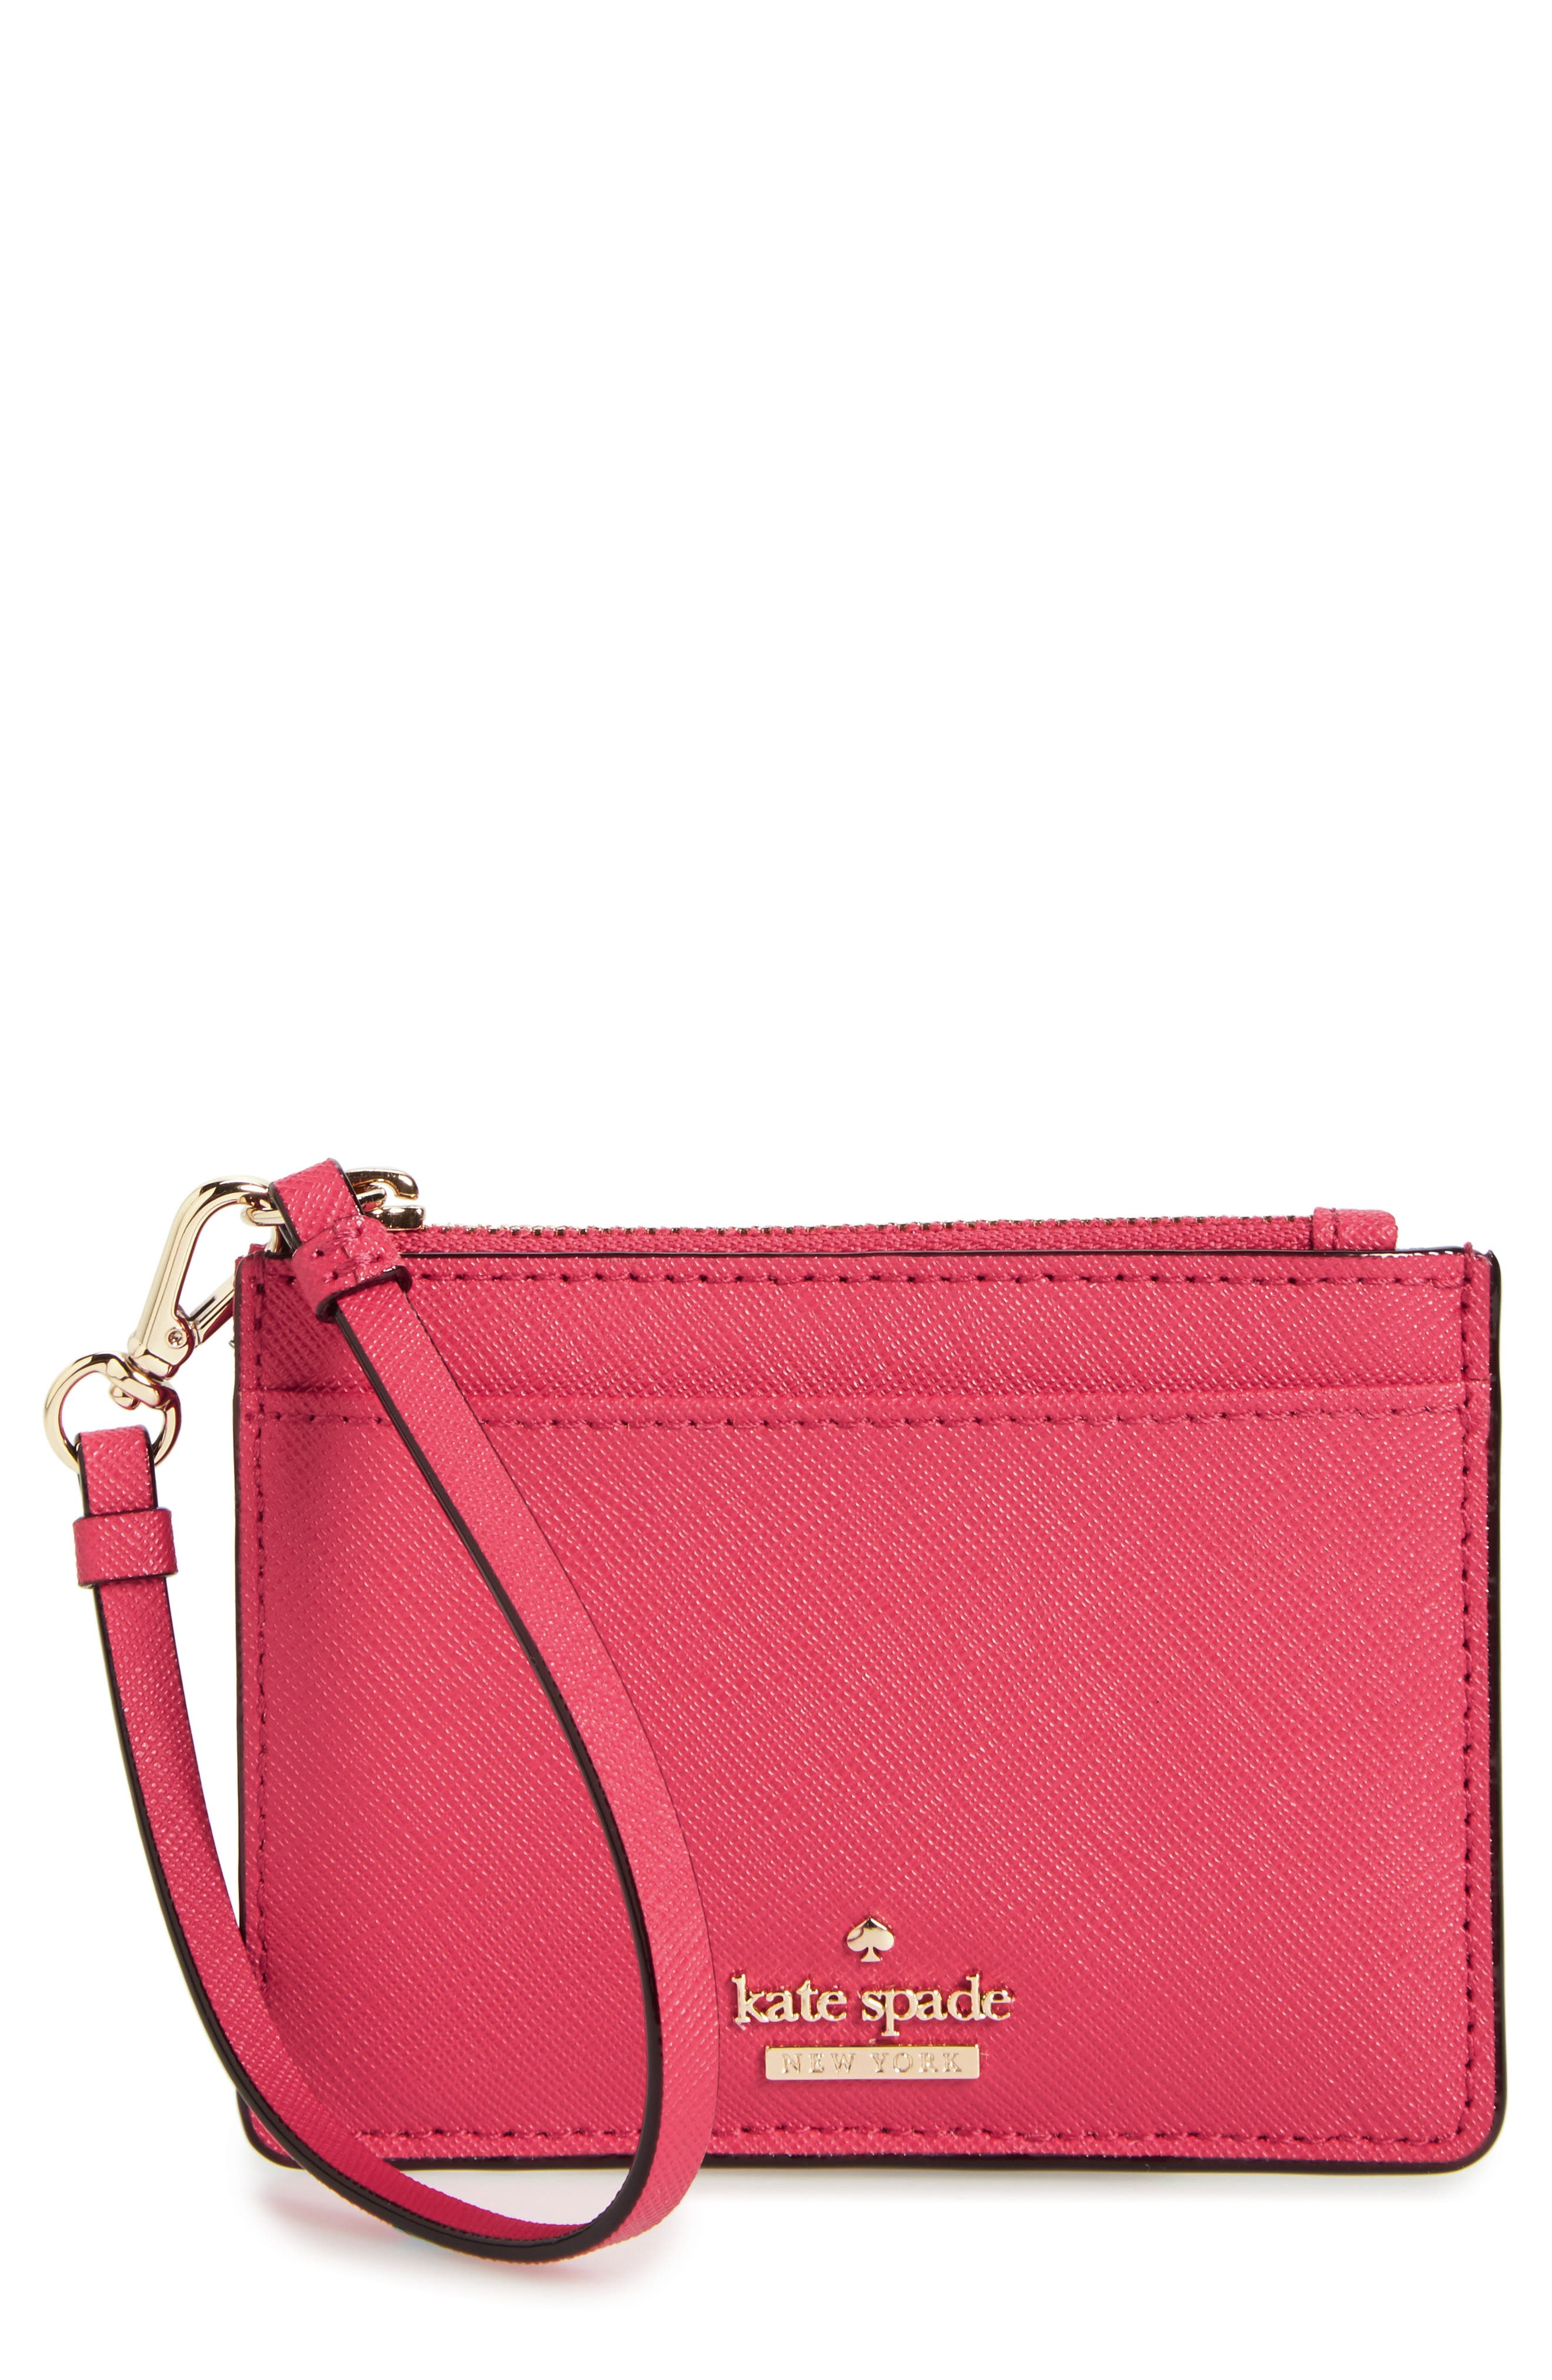 Main Image - kate spade new york cameron street - mellody leather card case